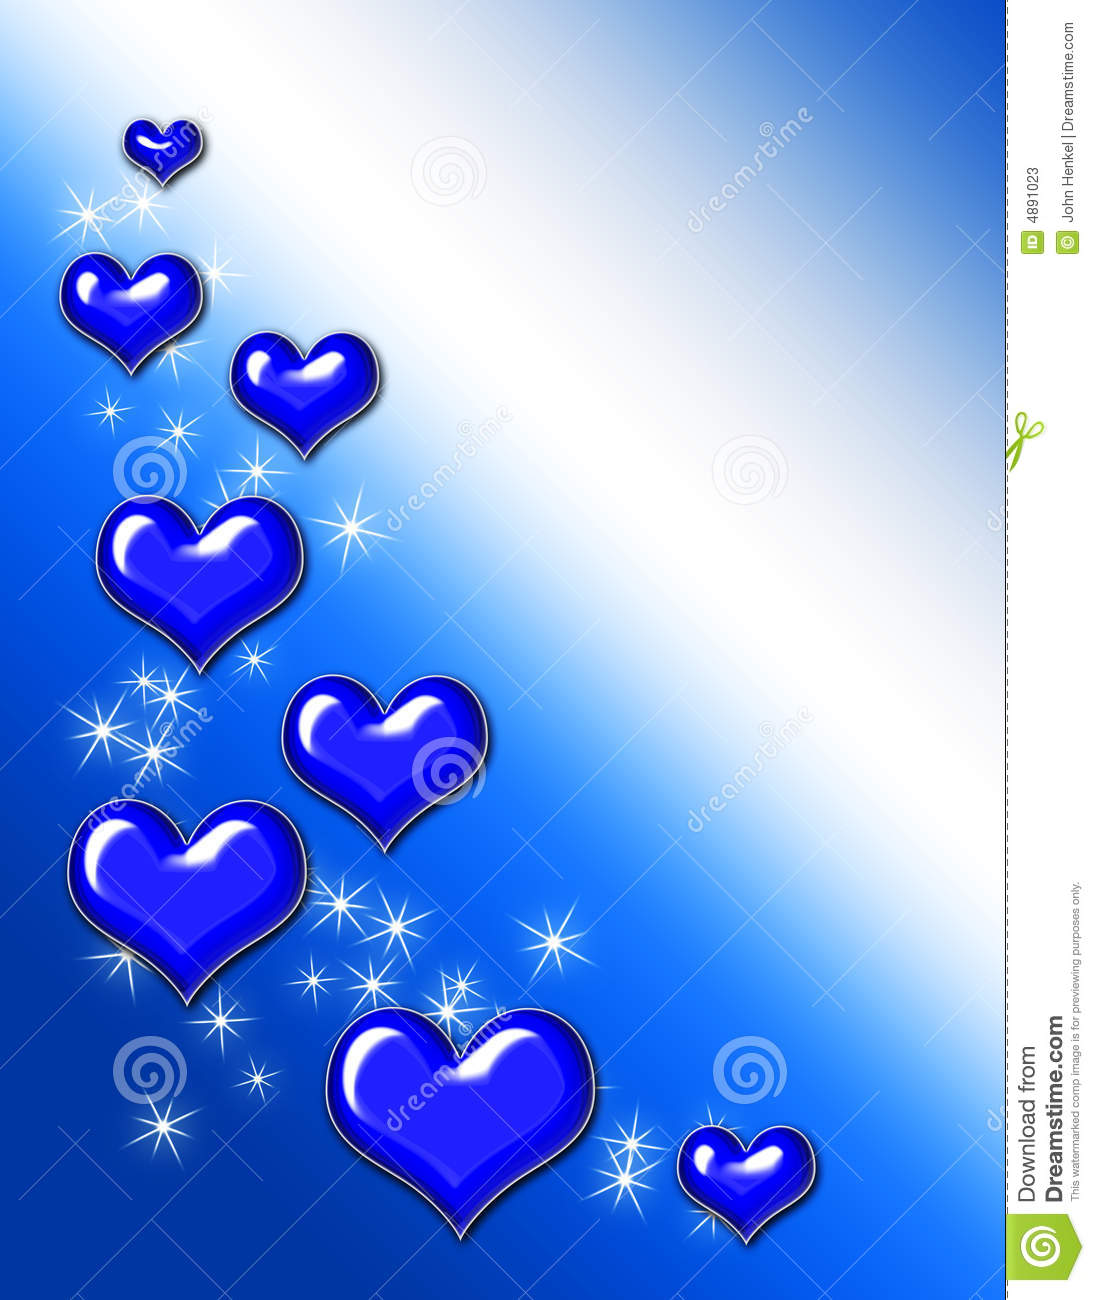 blue heart background stock illustration illustration of adore